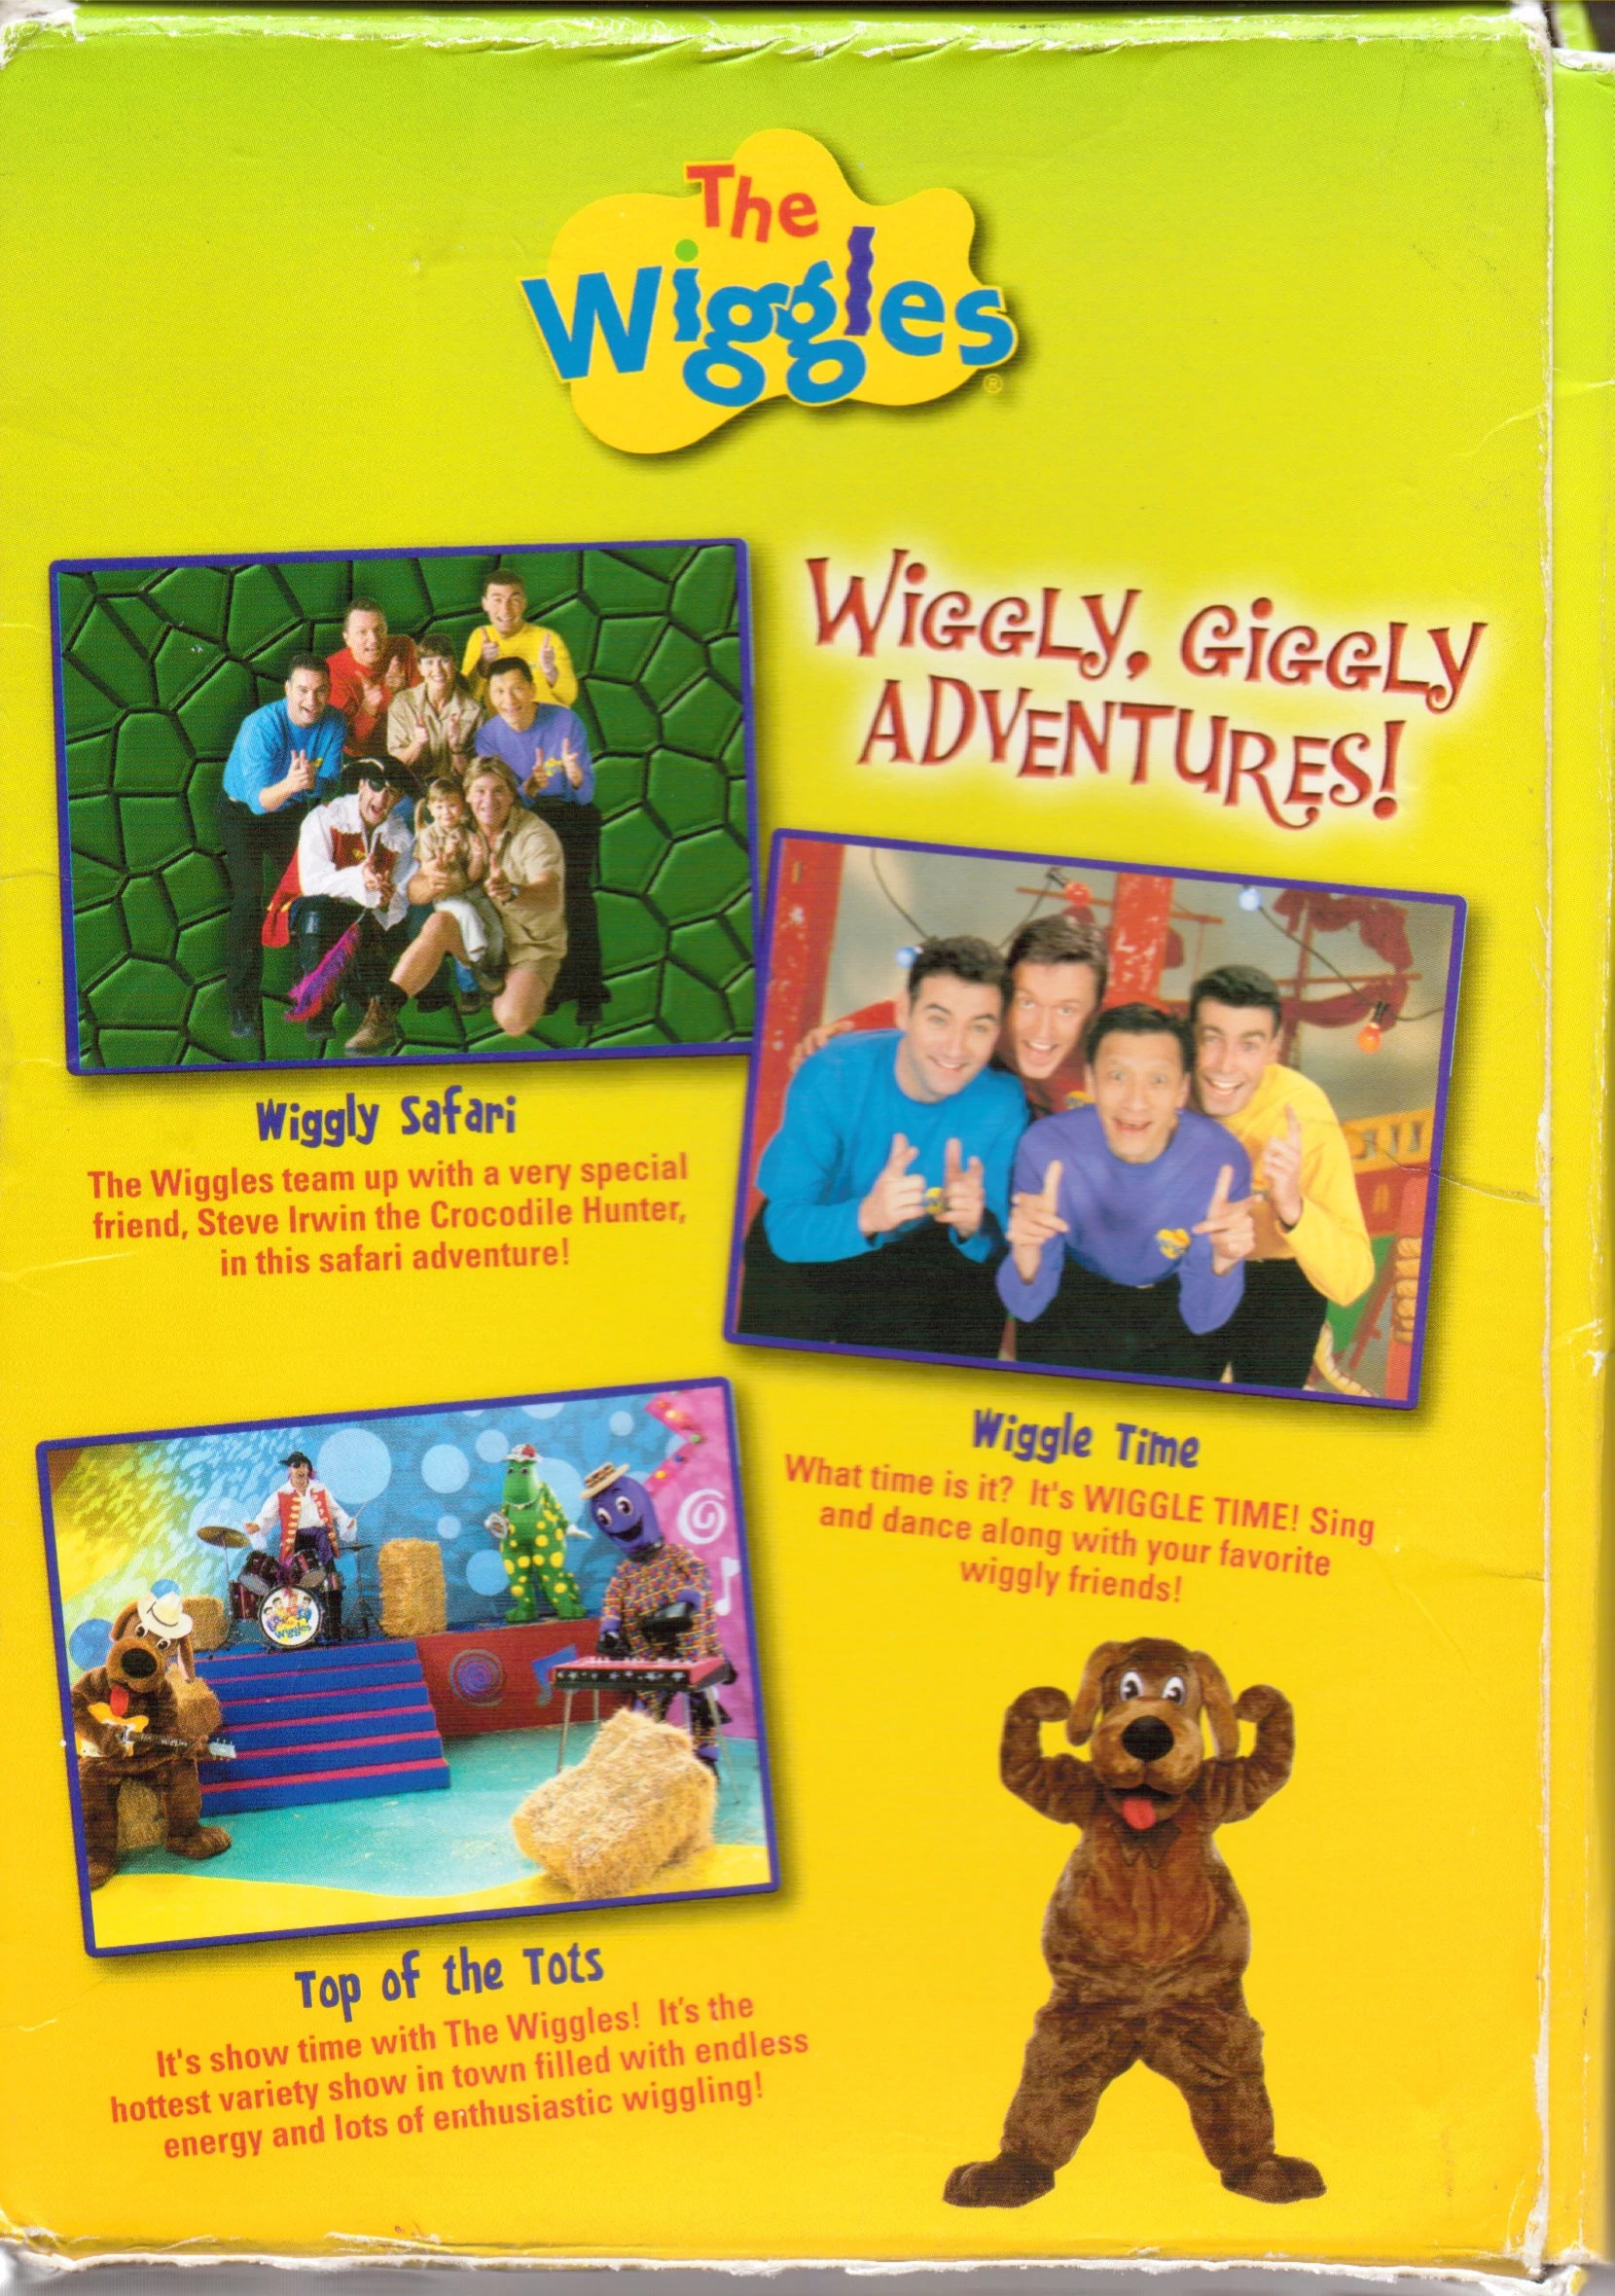 The Wiggles Vhs Wiggle Maina - Year of Clean Water